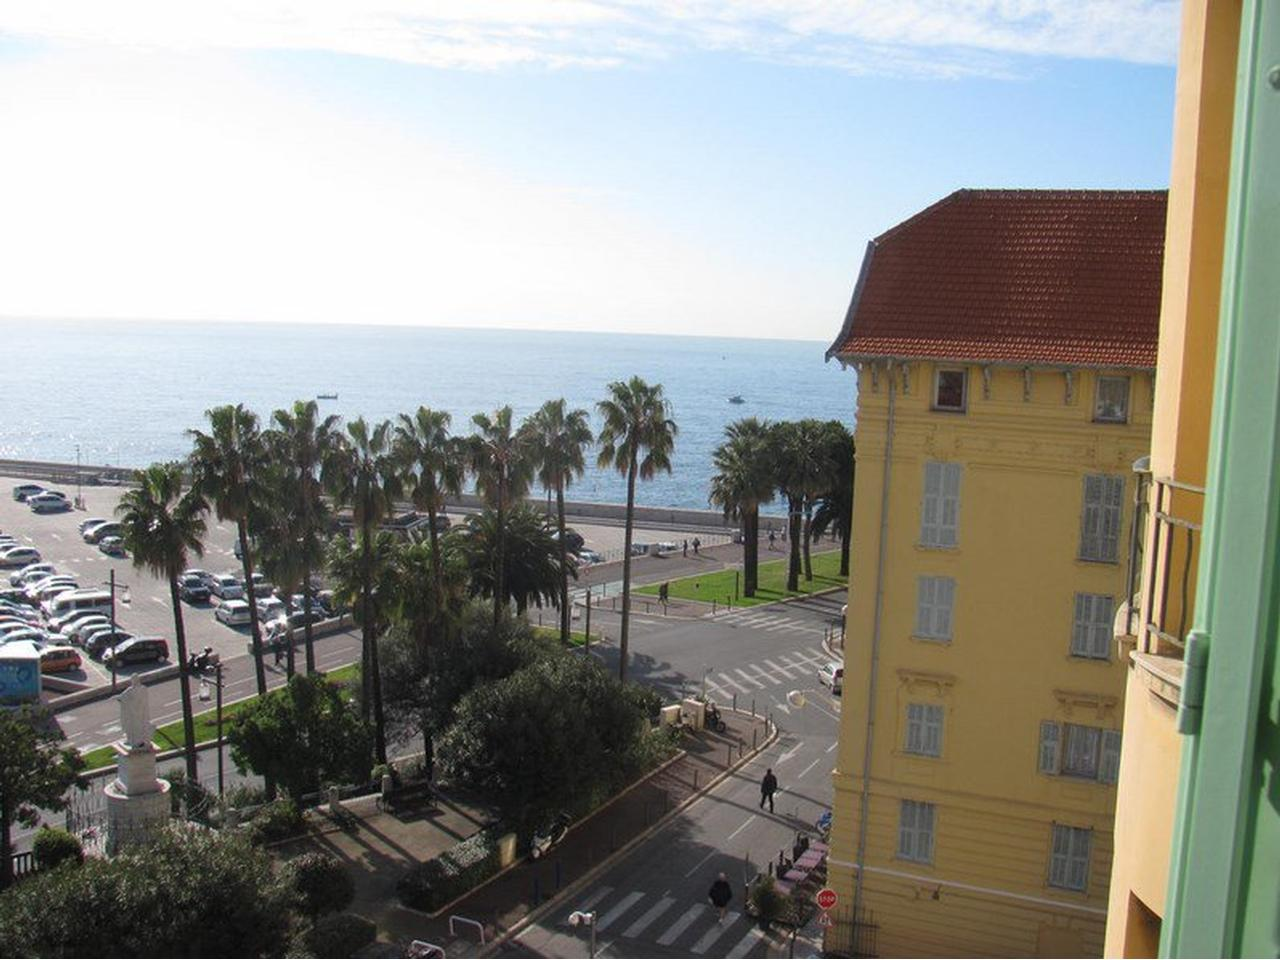 Vente appartement nice immobilier nice vue mer - Appartement a vendre port vendres vue mer ...